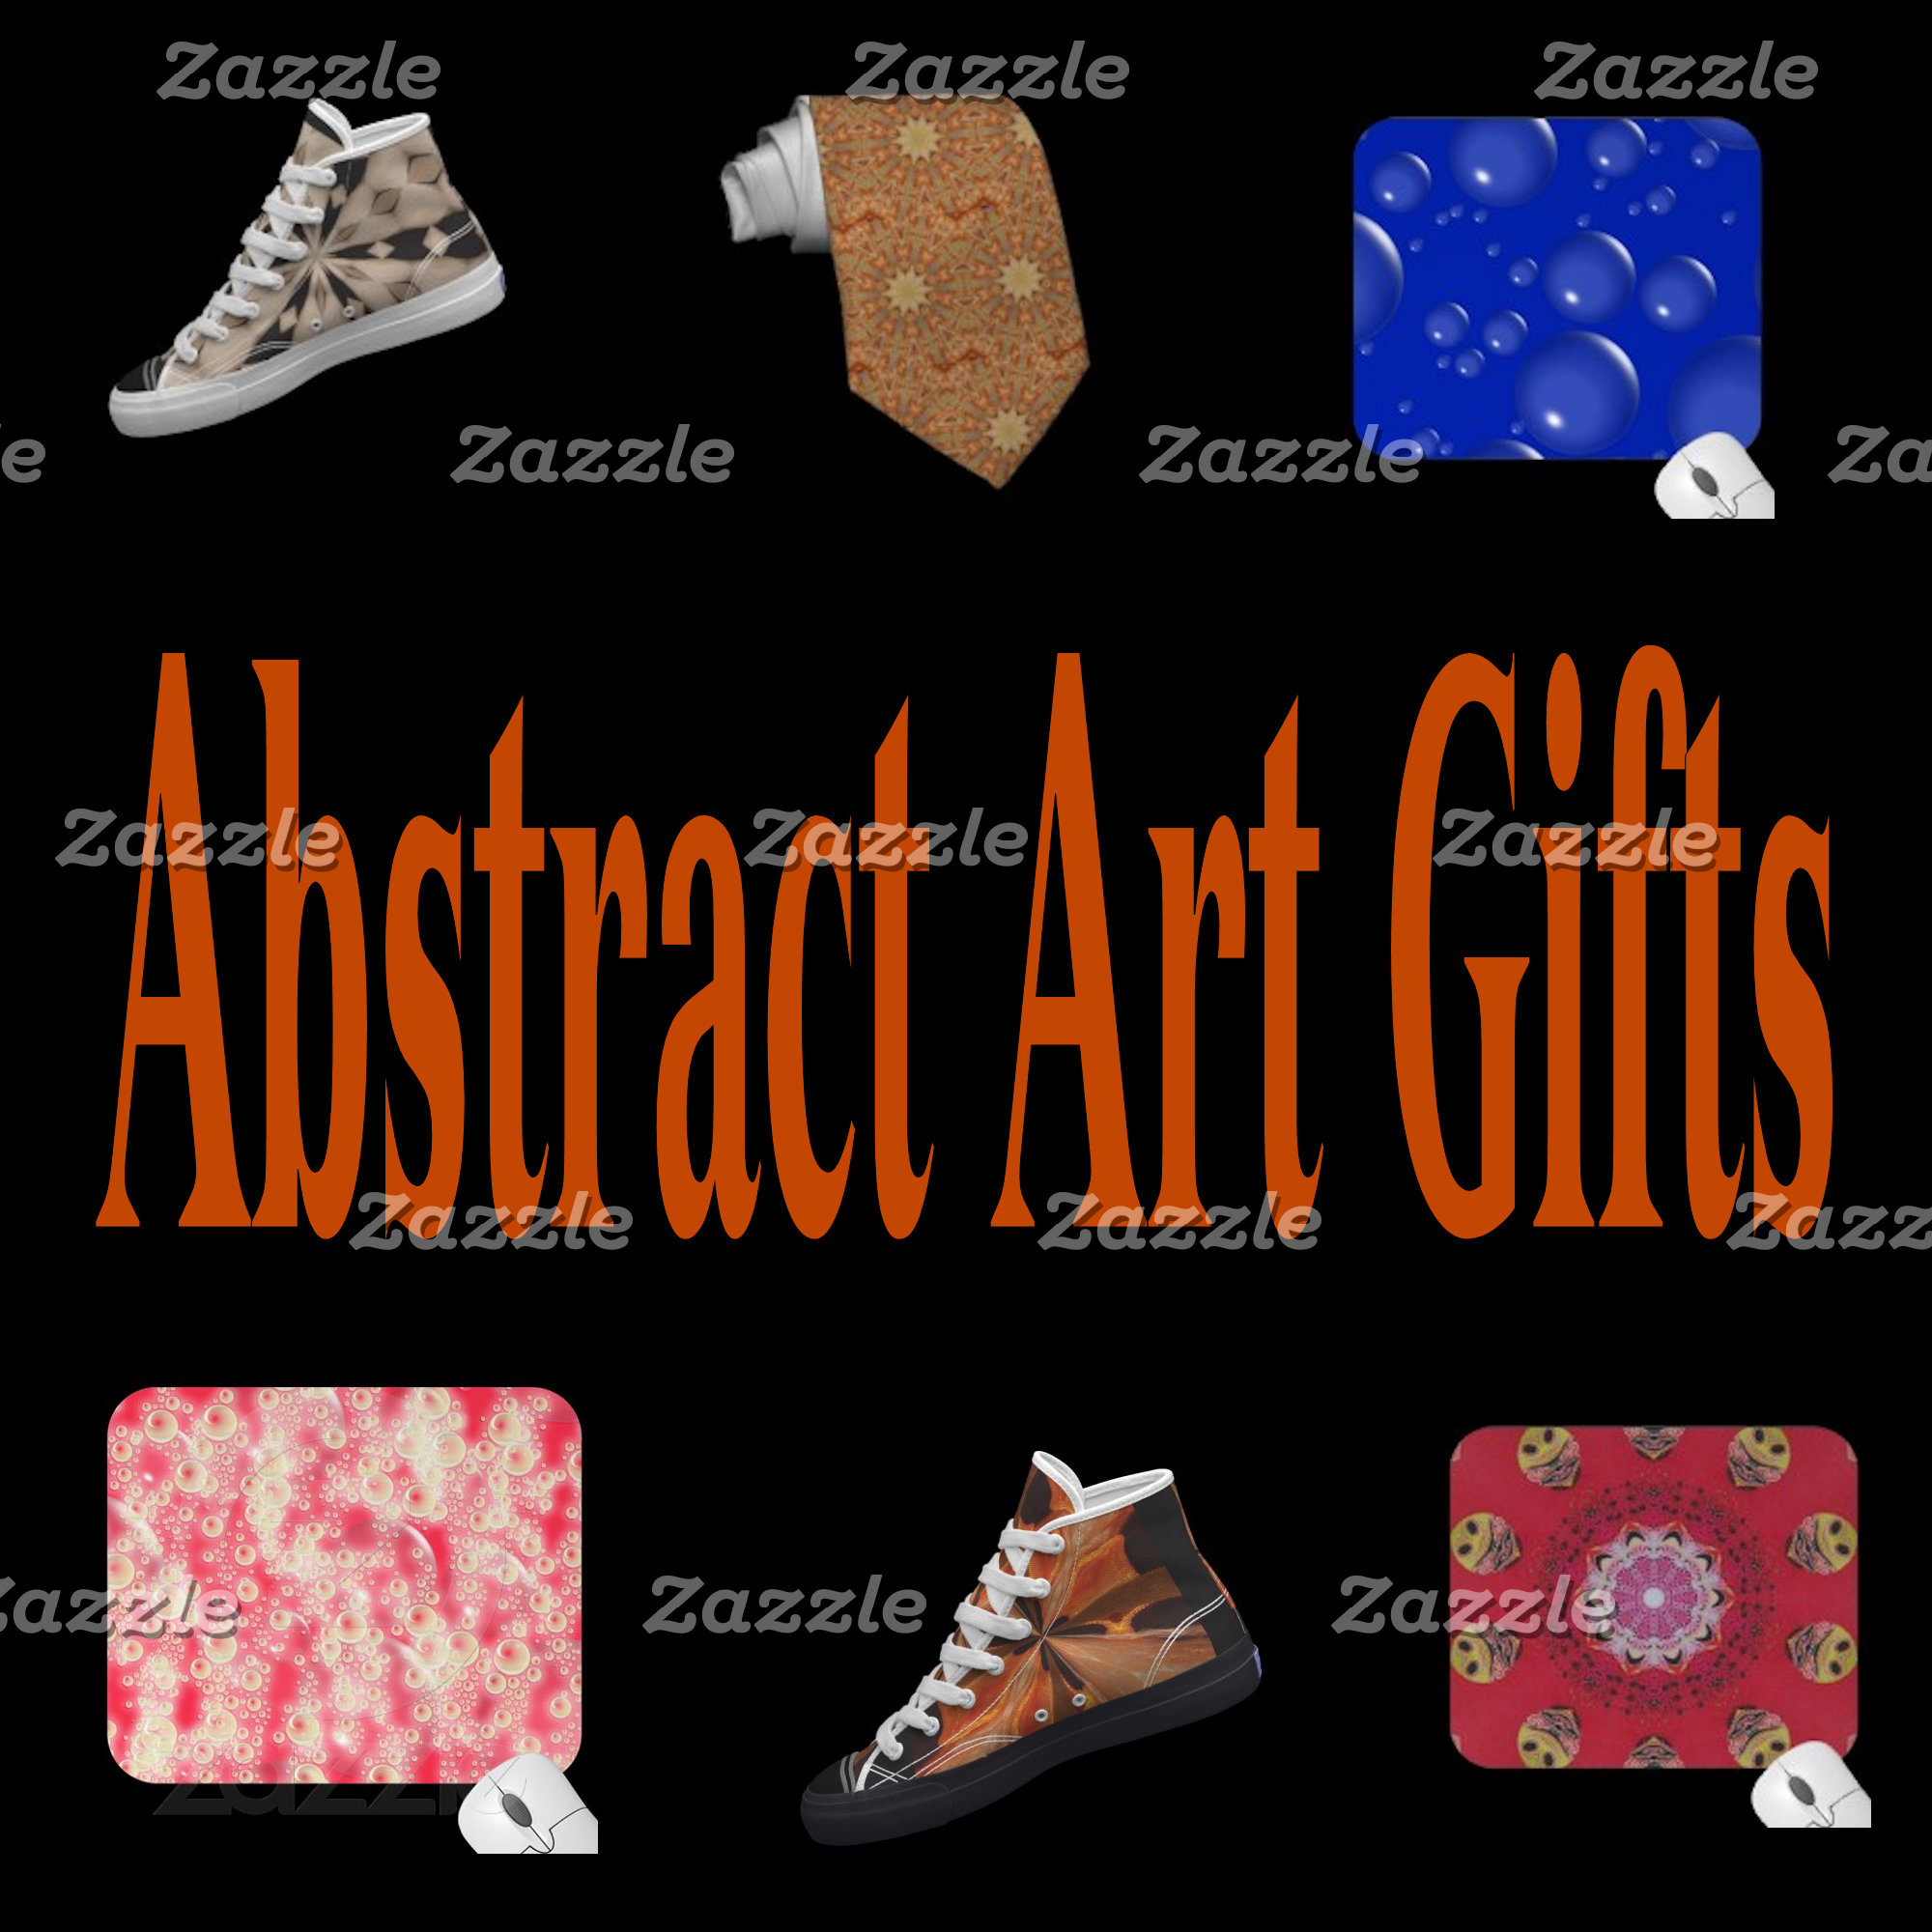 Abstract Art Gifts